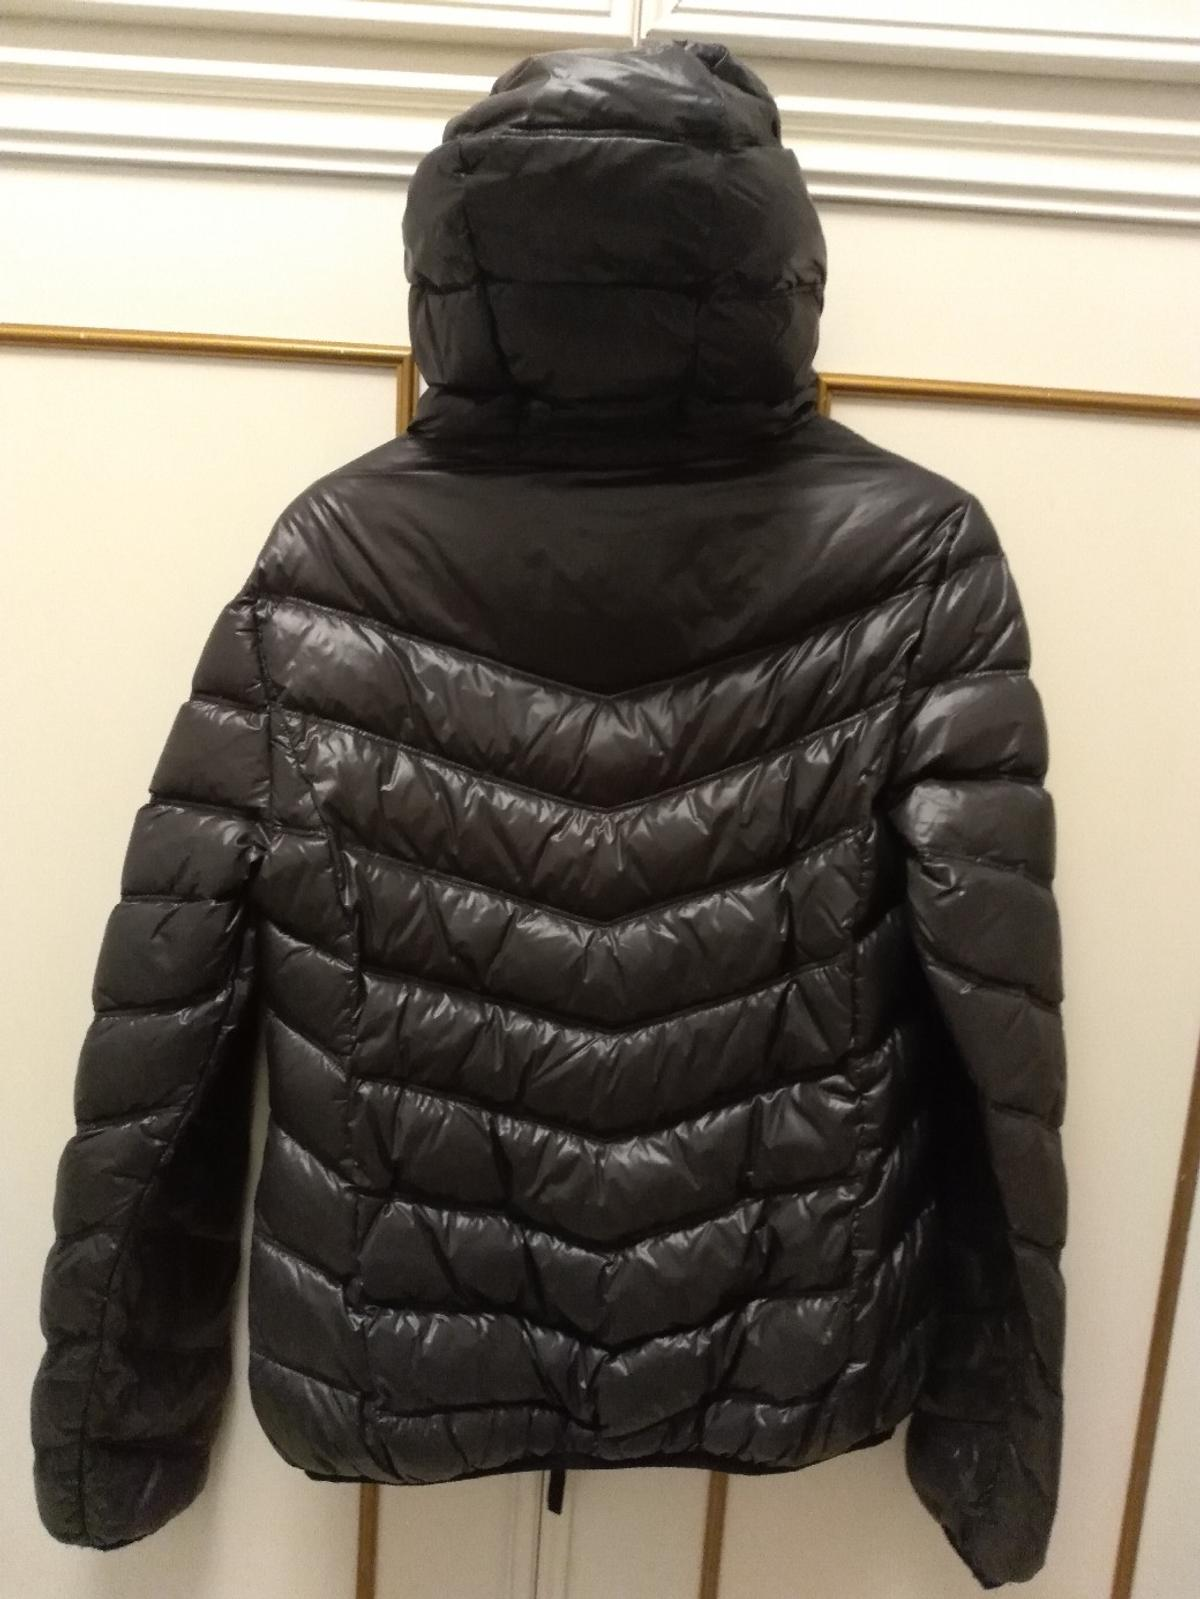 low priced bc140 b8d17 piumino donna Brekka in 50143 Firenze for €60.00 for sale ...